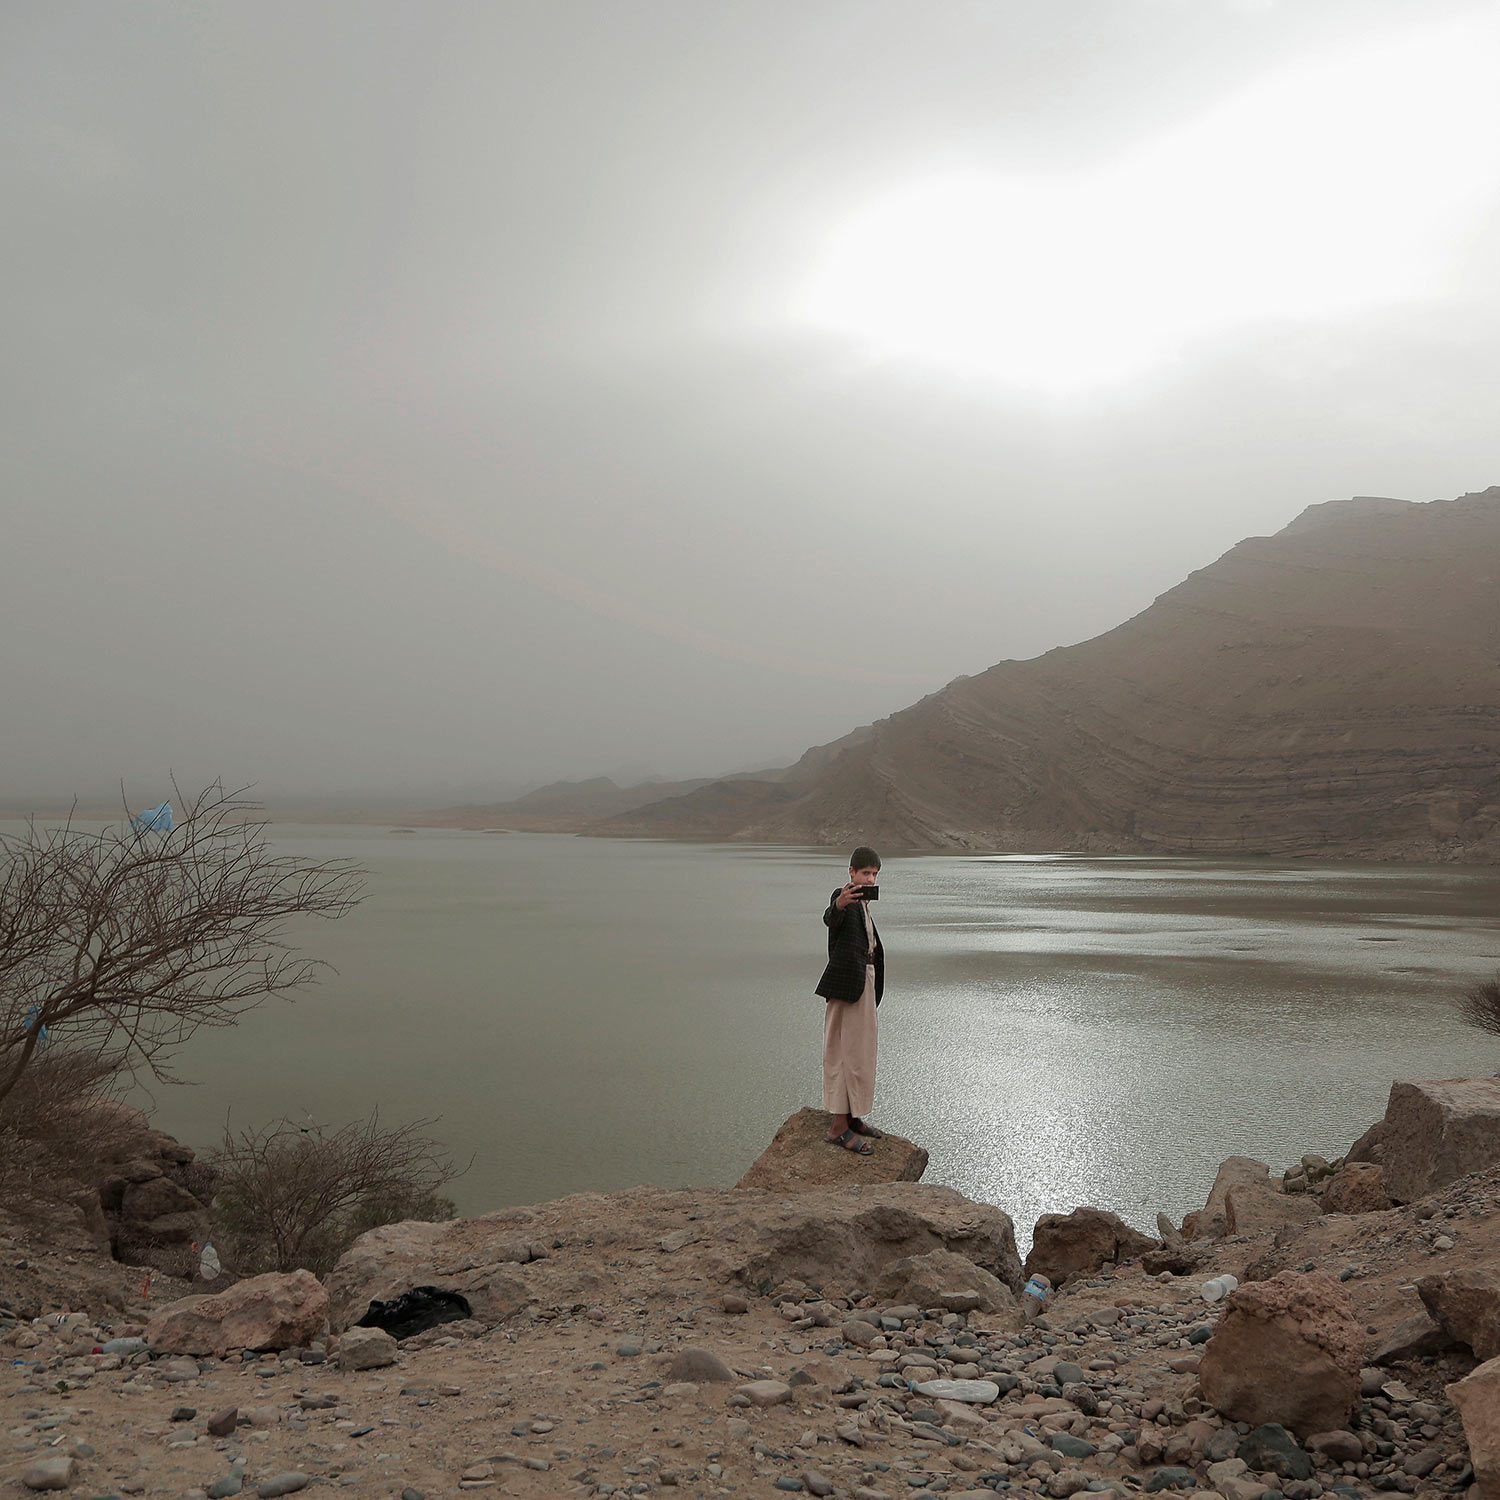 In this July 30, 2018 photo, a boy takes a 'selfie' with the Marib Dam in Yemen. (AP Photo/Nariman El-Mofty)